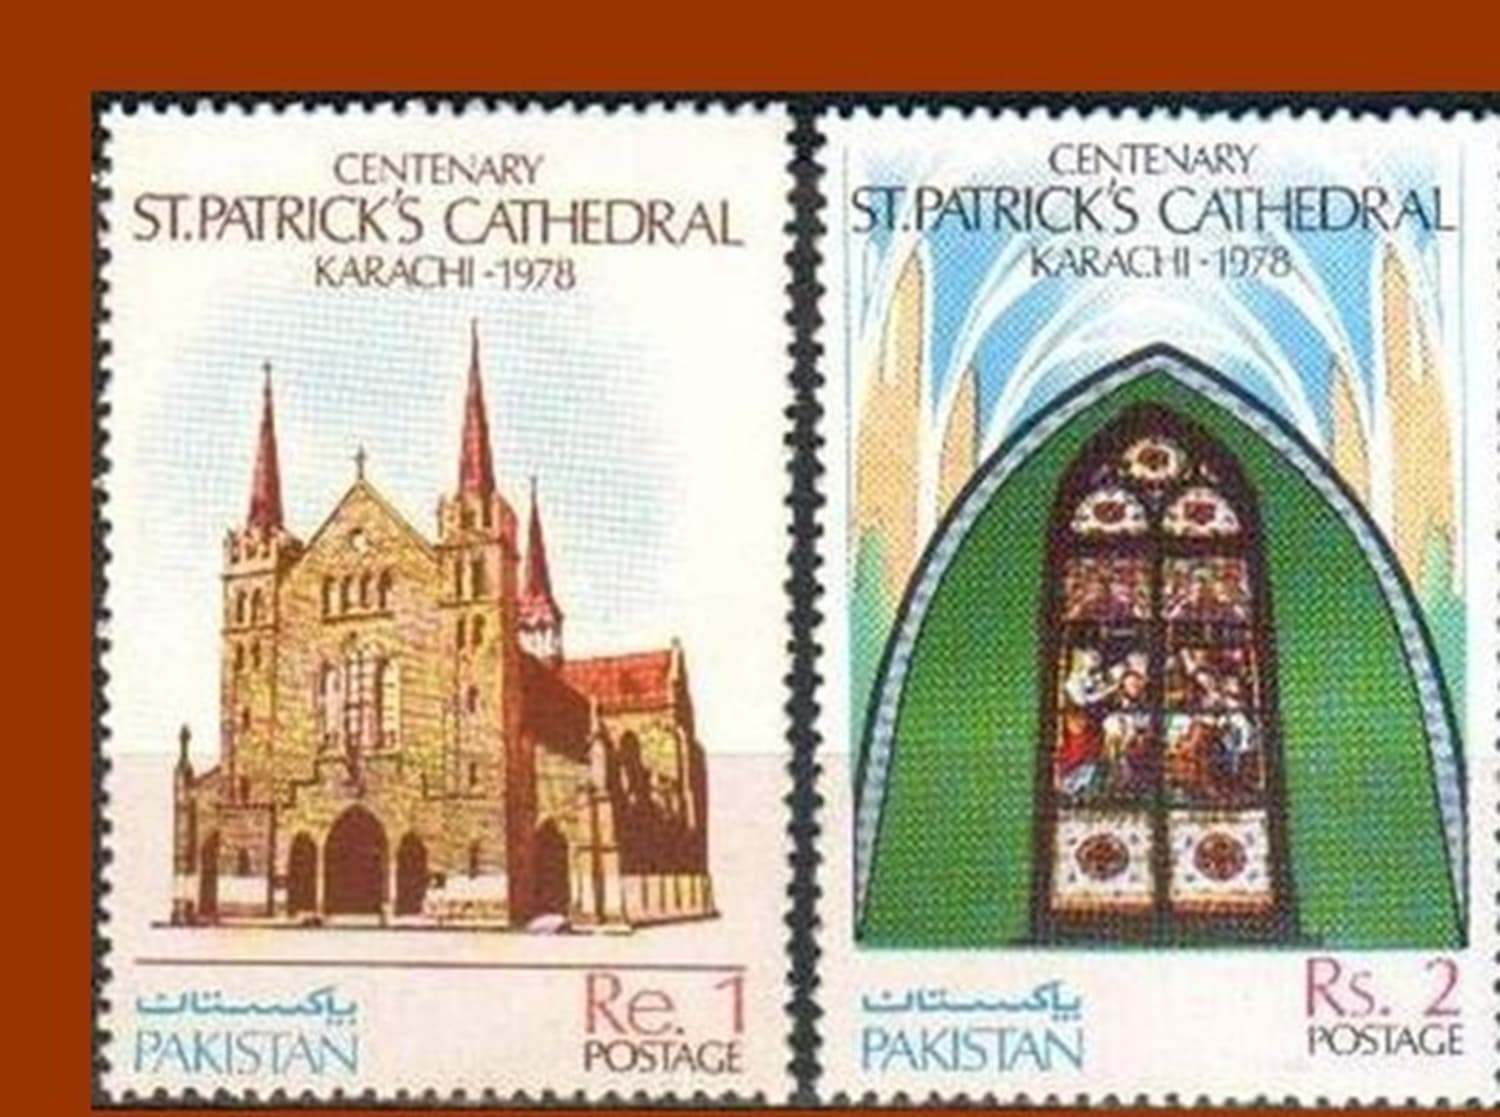 Photo: Pakistan Stamps.